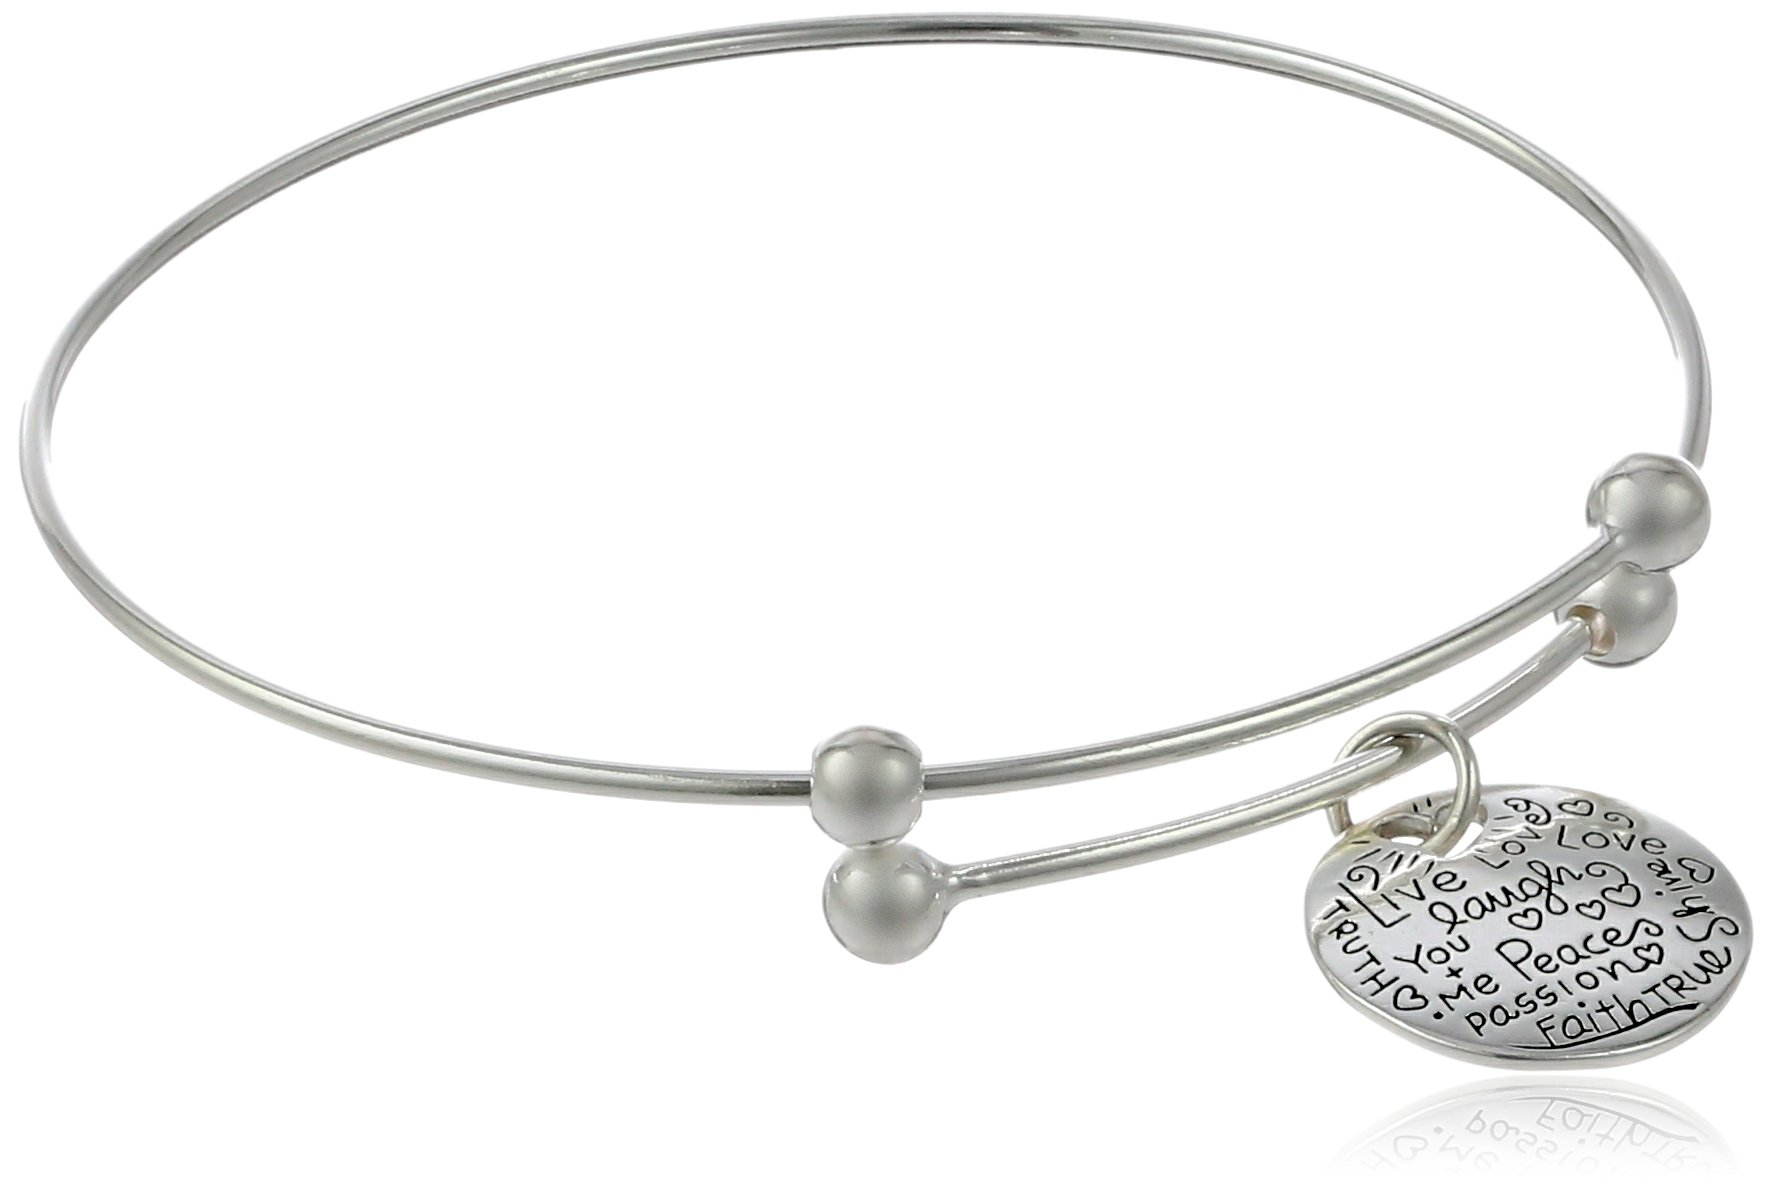 Sterling Silver Adjustable''Live Laugh Love'' Graffiti Charm Bangle Bracelet by Amazon Collection (Image #1)